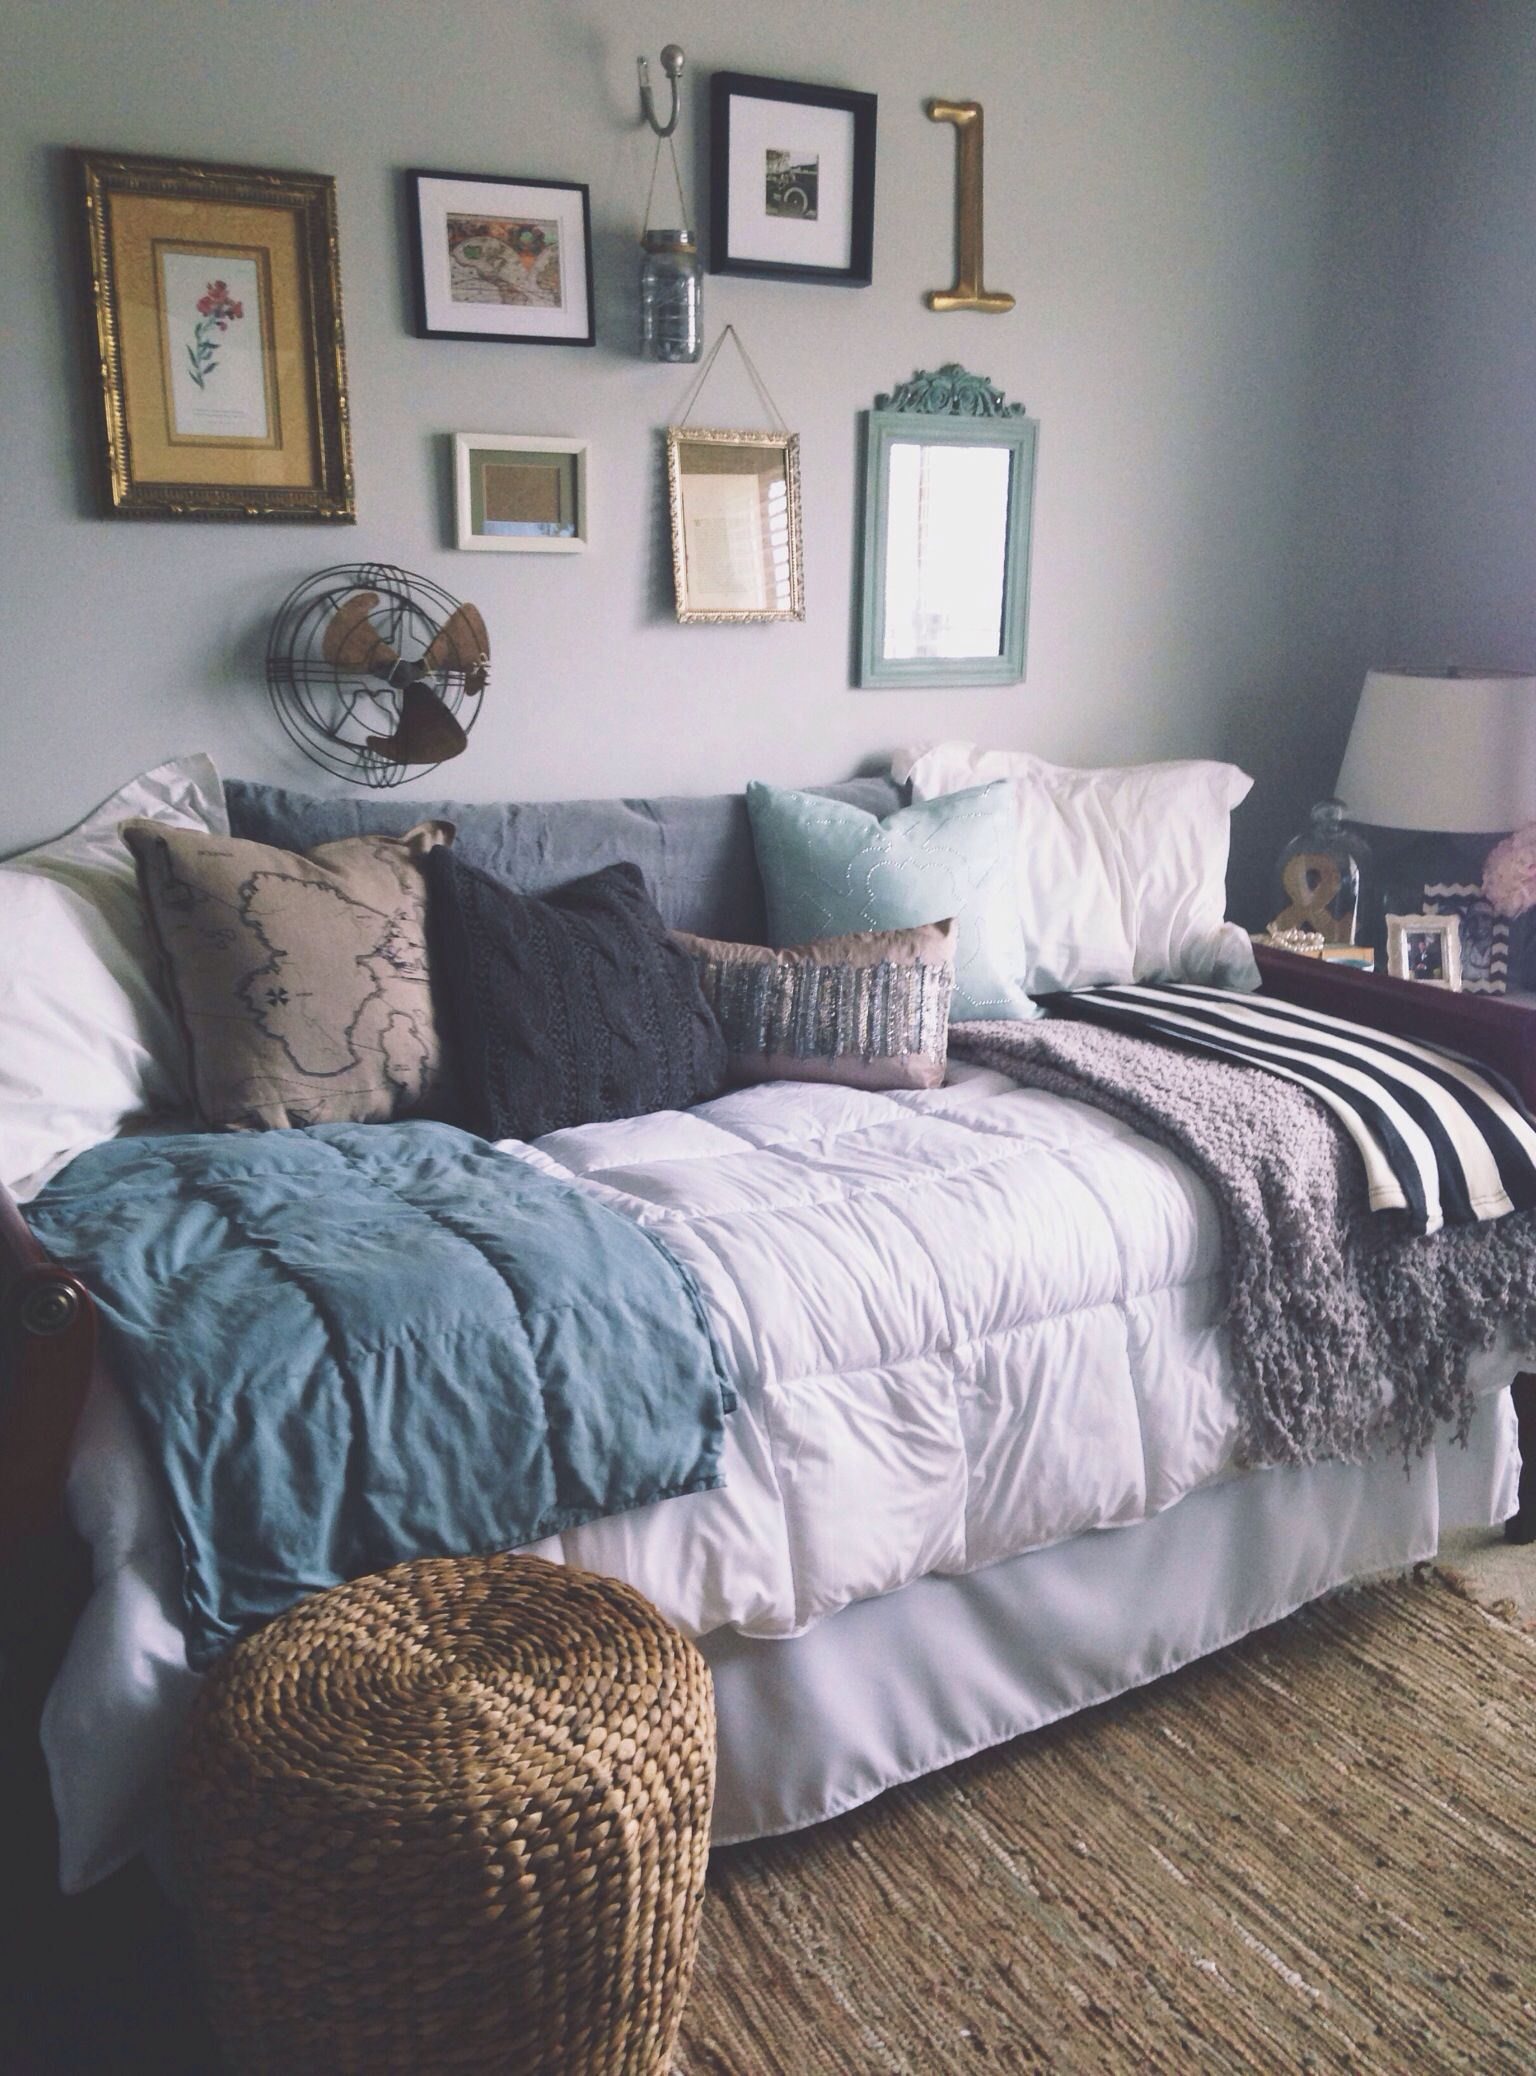 Twin Bed into Daybed in Living Room